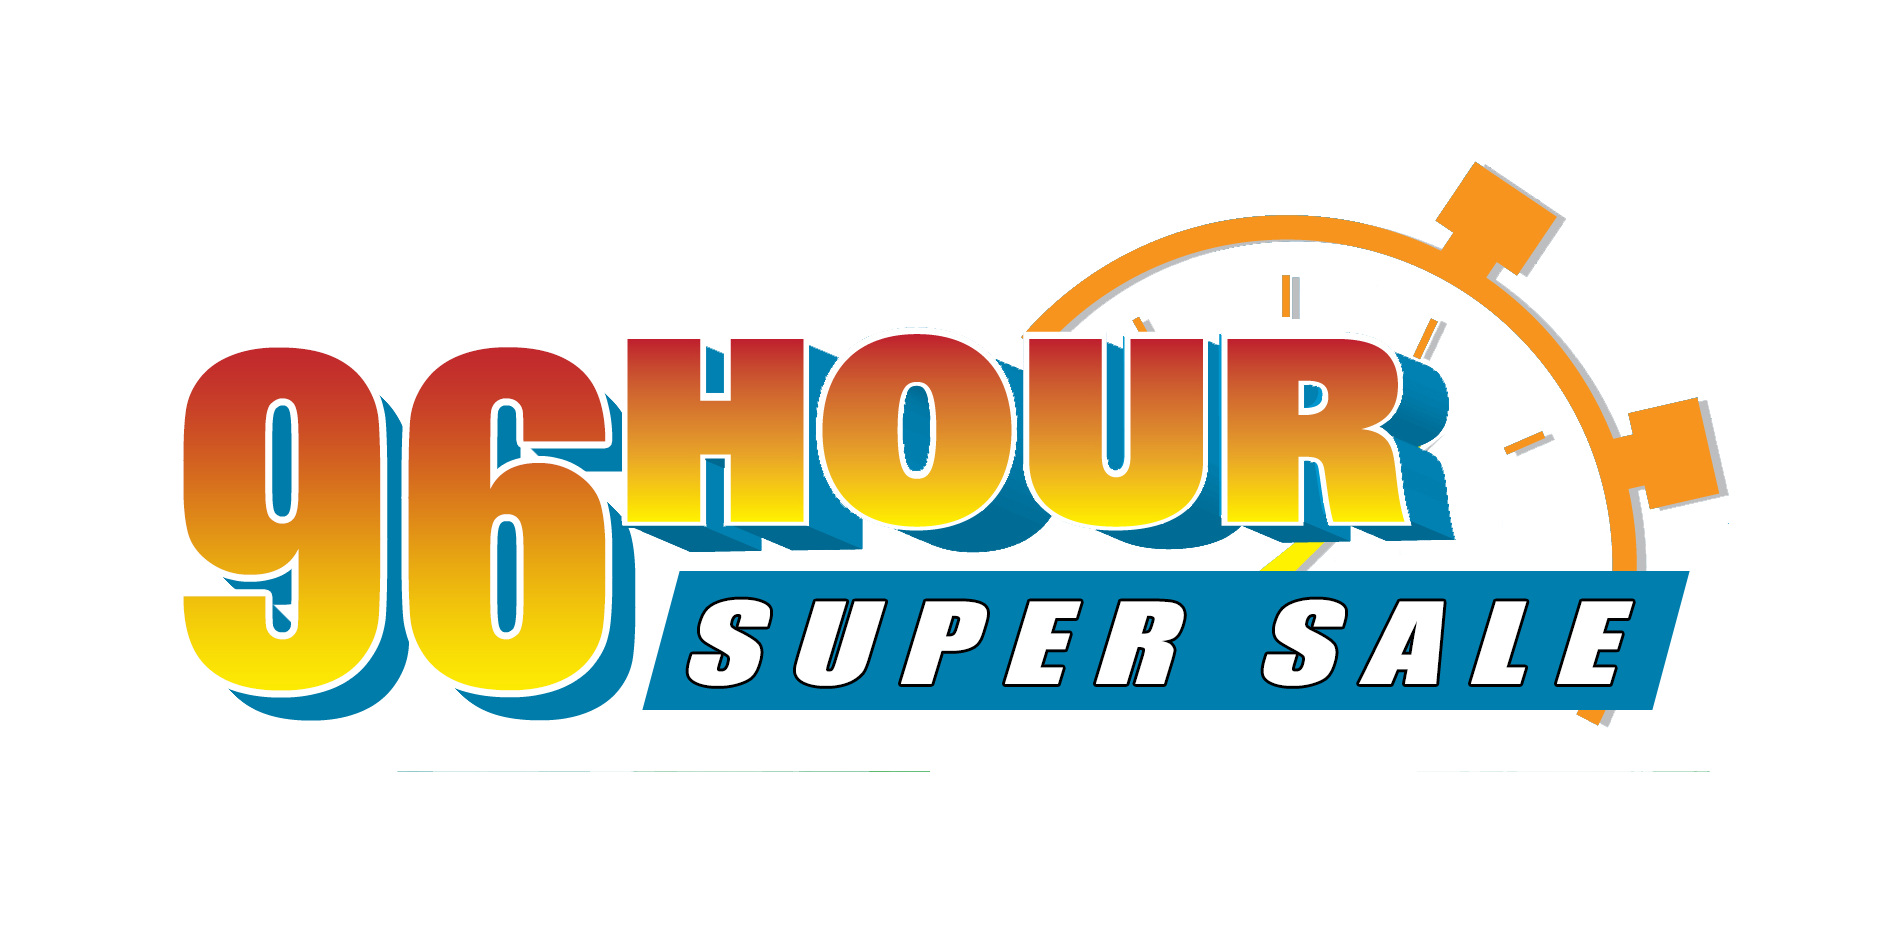 96 Hour Super Sale